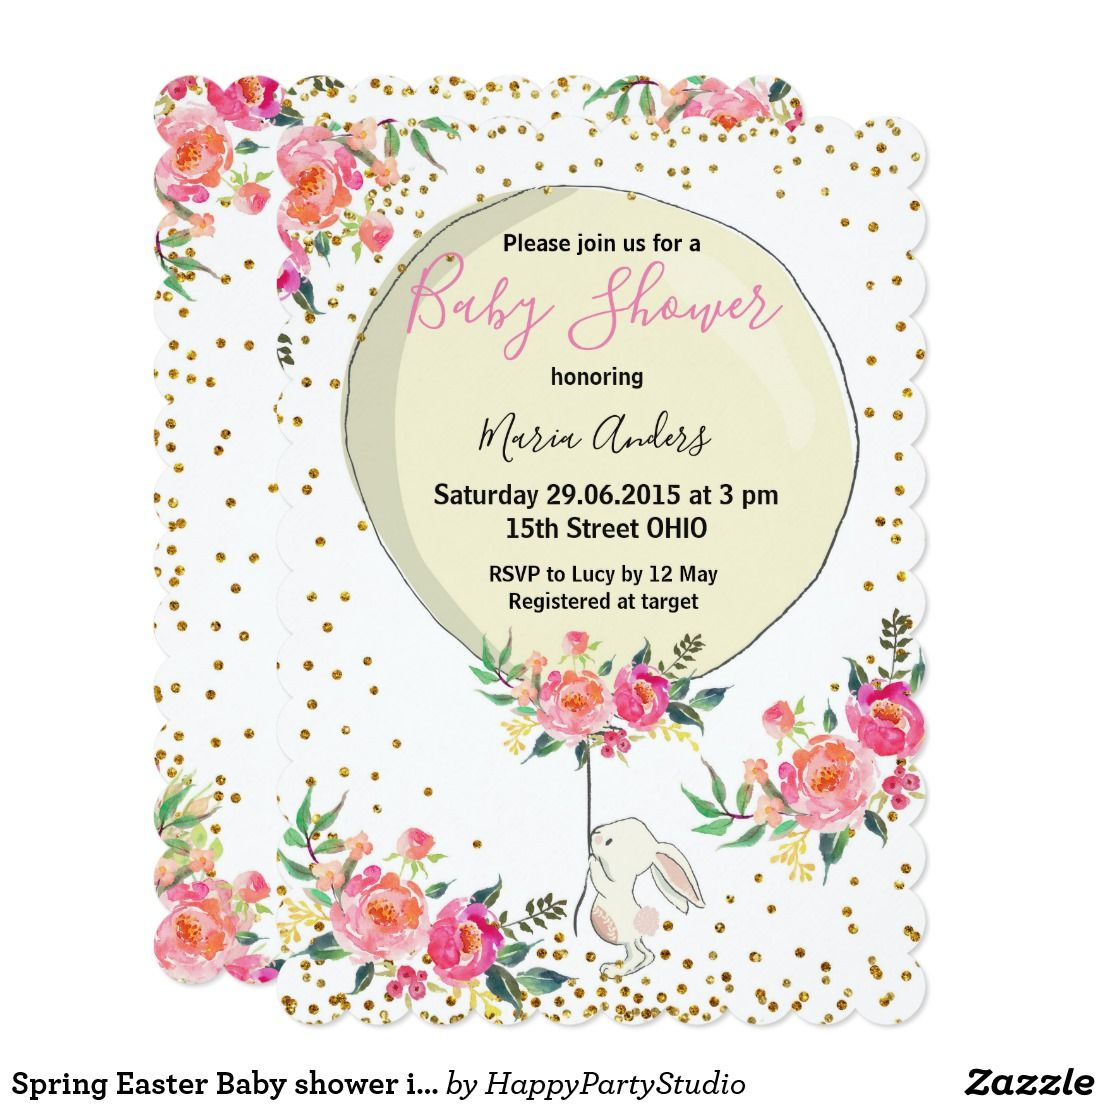 Spring Easter Baby Shower Invitation With Cute Bunny Balloon And Gold Confetti